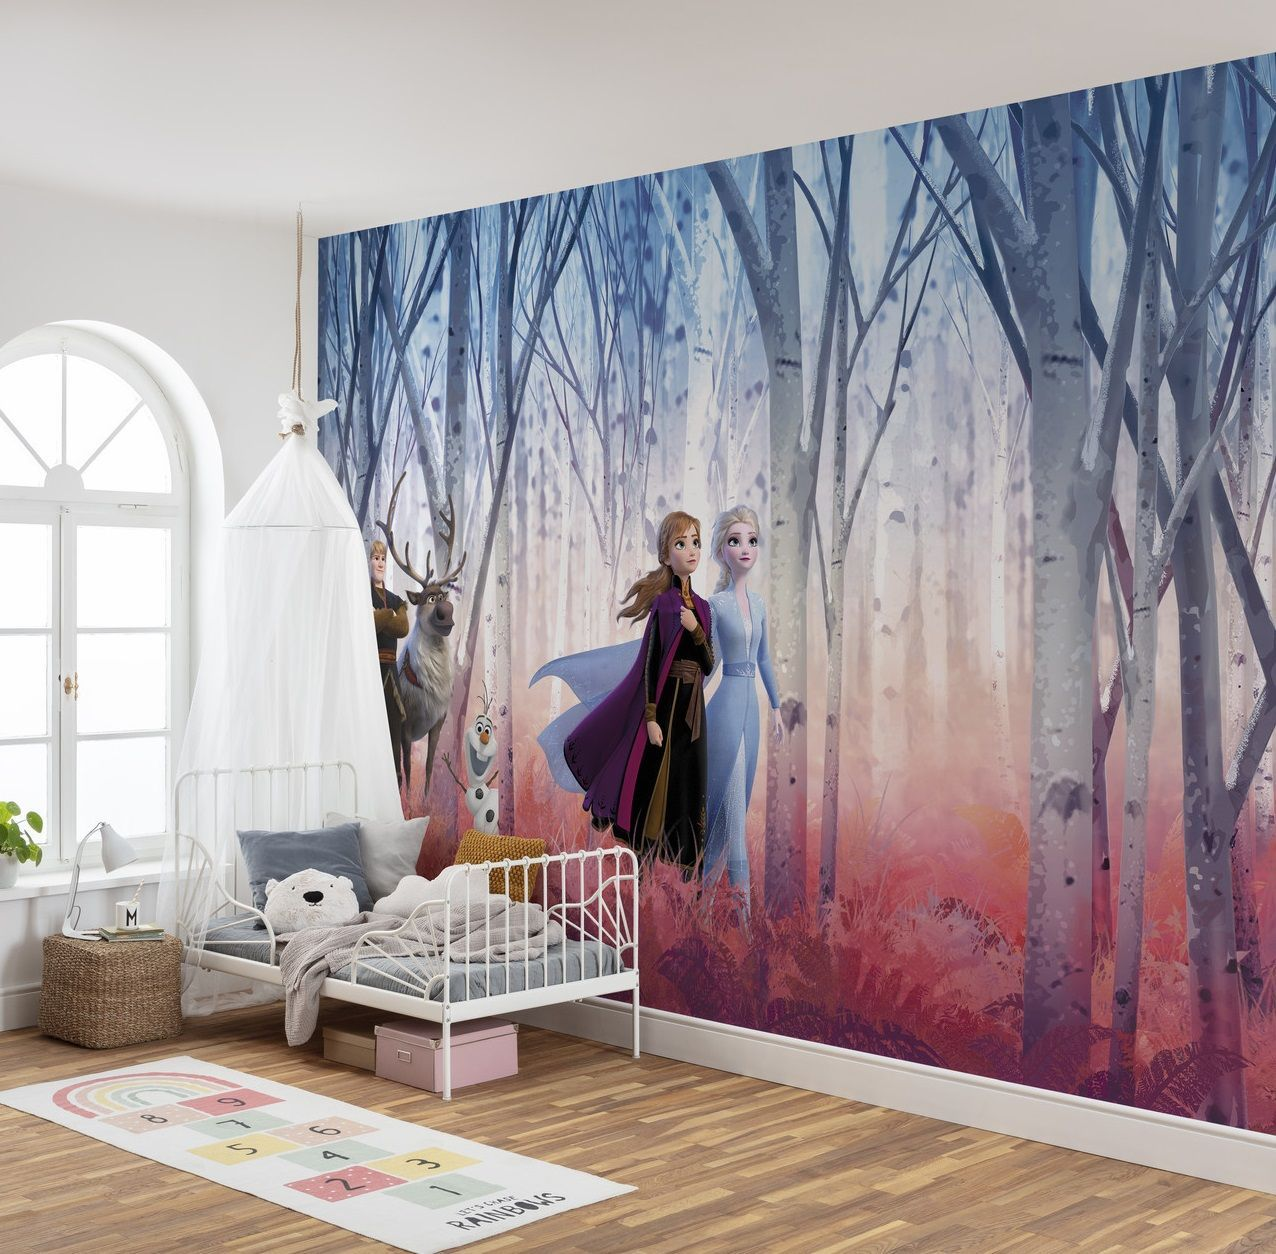 BIG Wall Mural Photo Wallpaper Disney Frozen Elsa Anna Christof No Adhesive